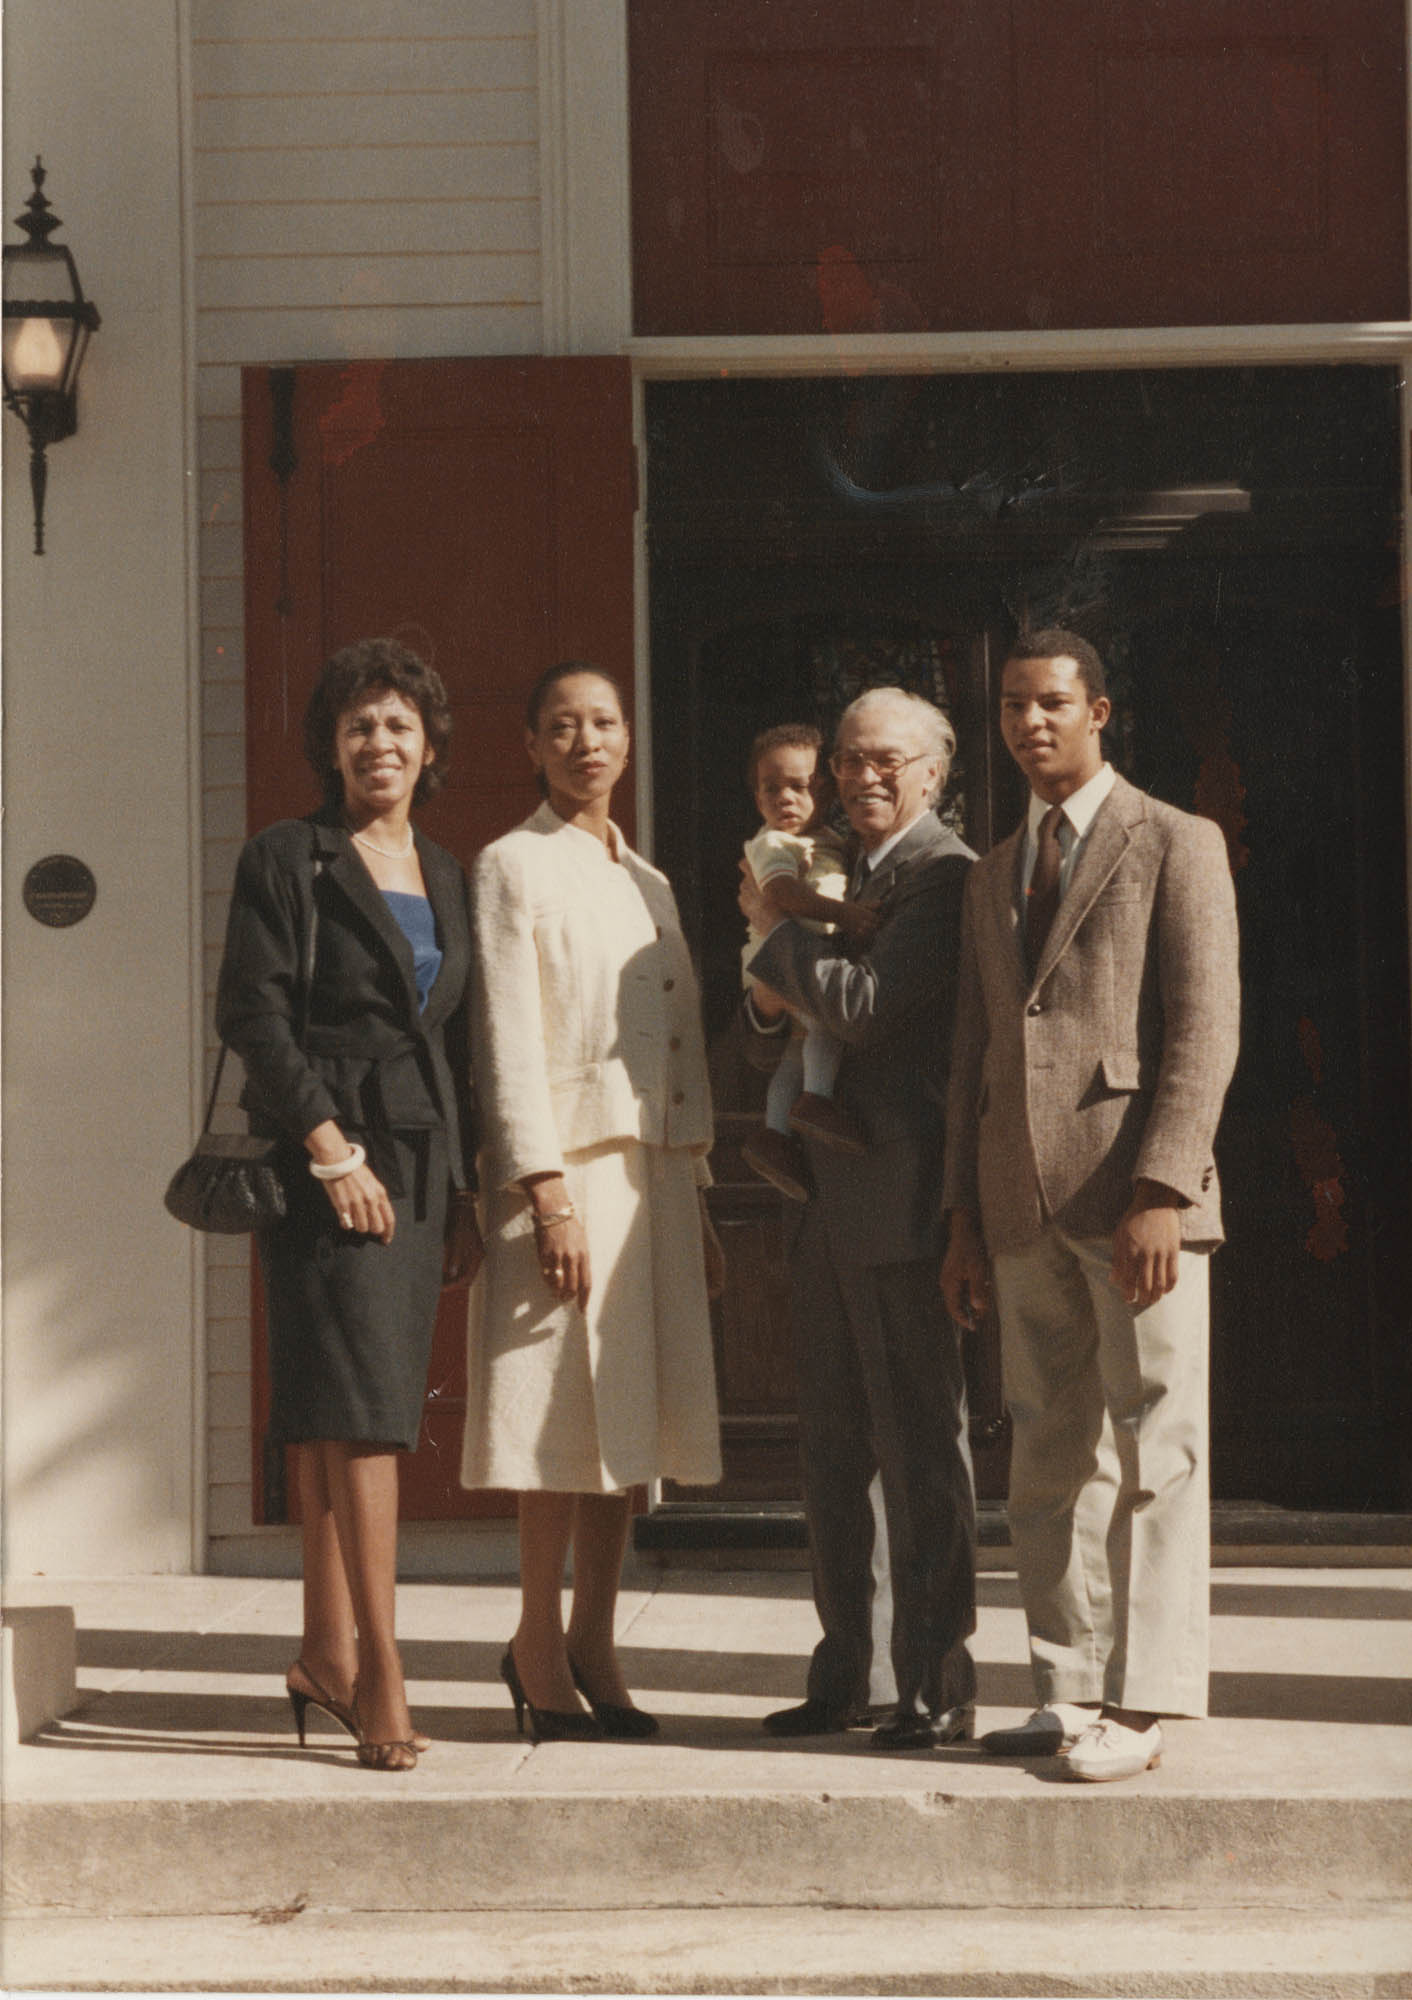 Photograph of Henrie Monteith Turner, Margaret Mills, Eugene Hunt, Gregory Brown, and Infant Akil Latey Lipscomb